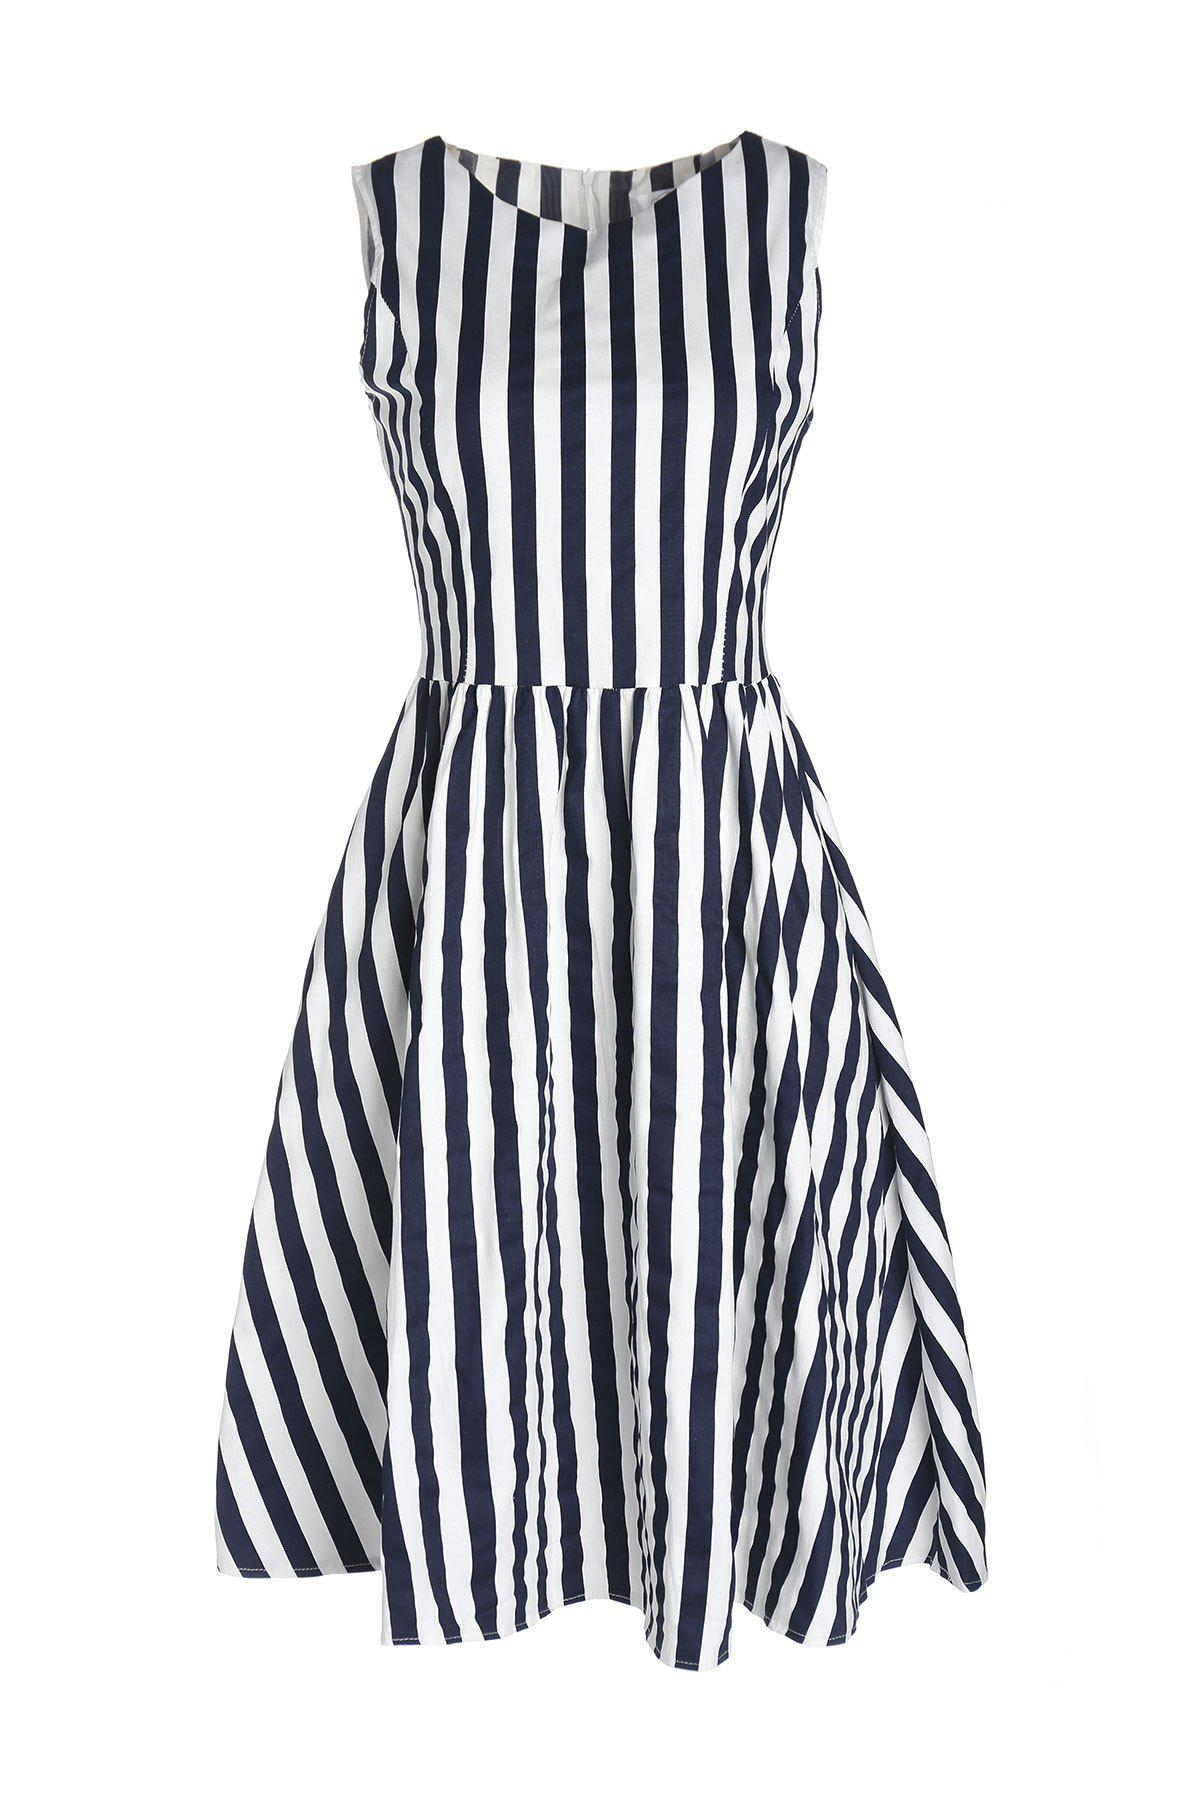 Retro Style Boat Neck Sleeveless Striped Ball Gown Women's Dress - BLUE/WHITE M